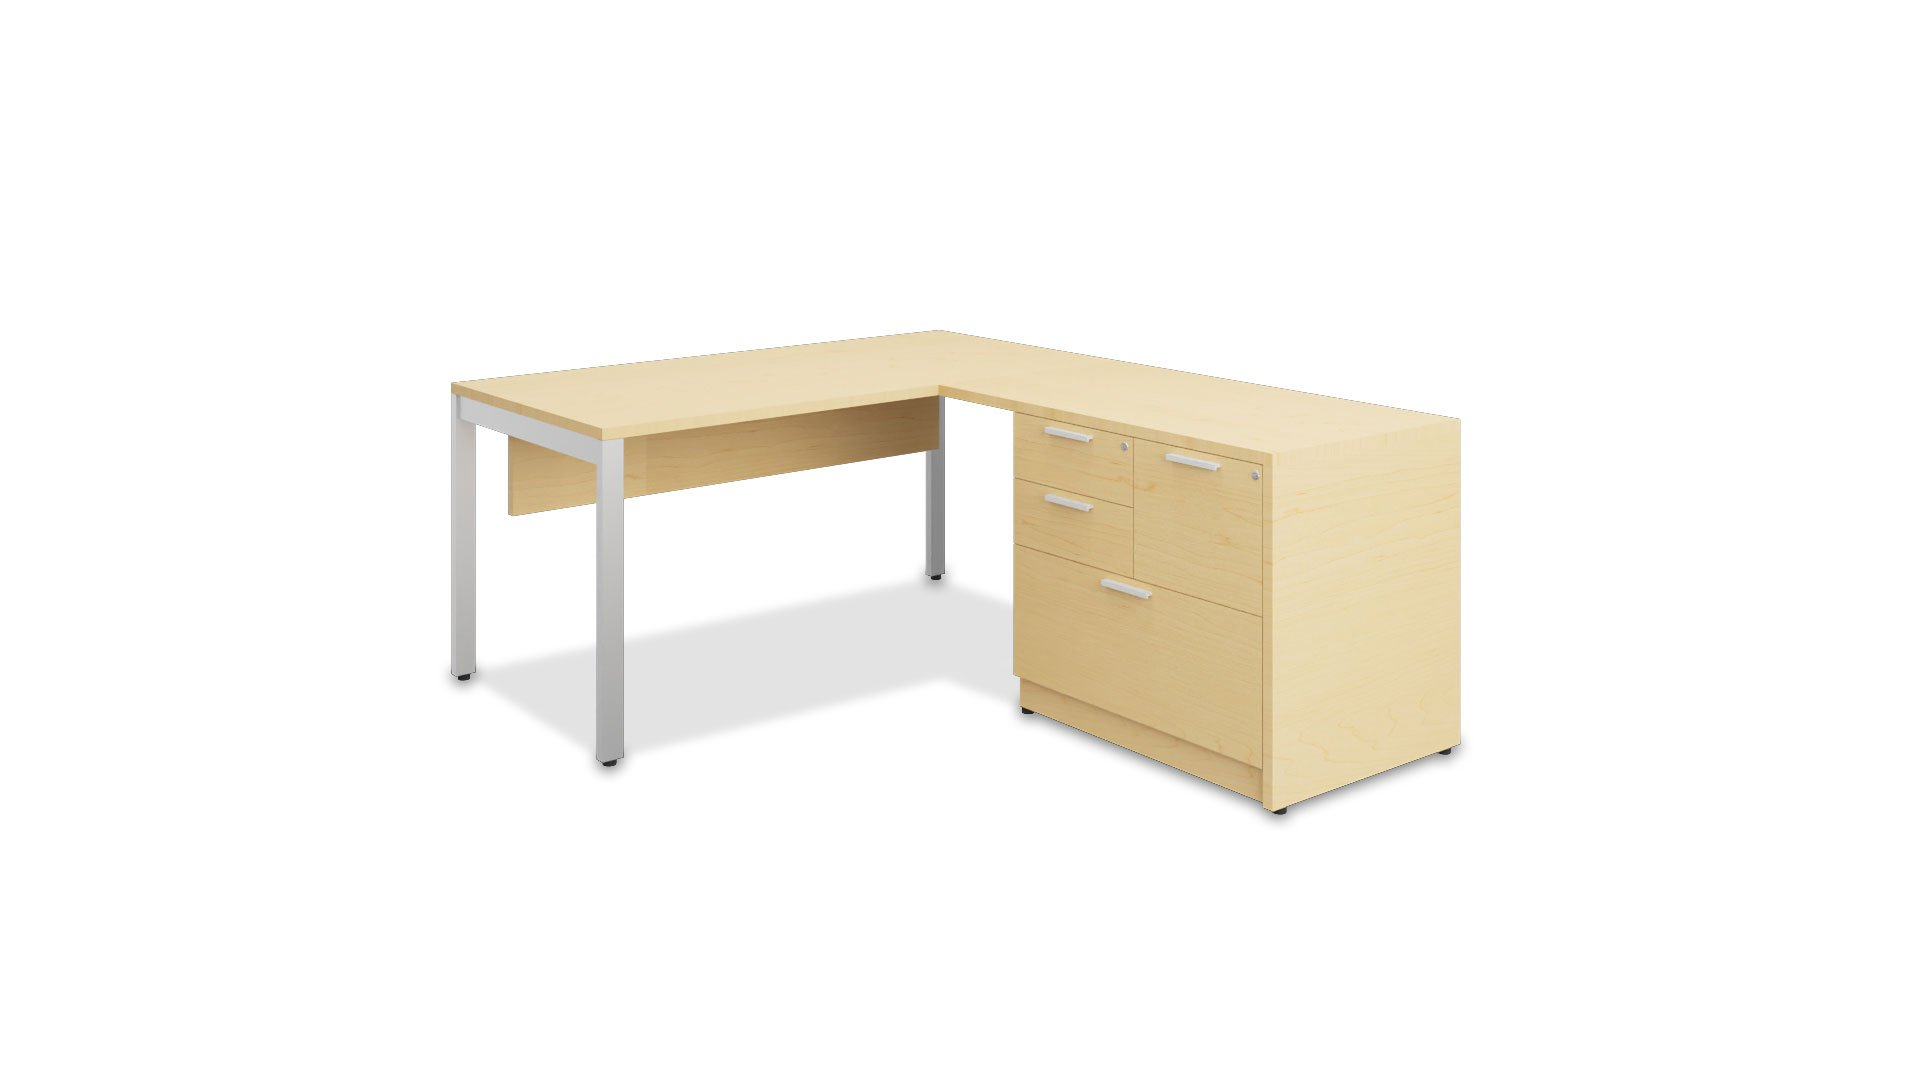 Typical L-Shaped Desk with Mixed Storage and Modesty Panel